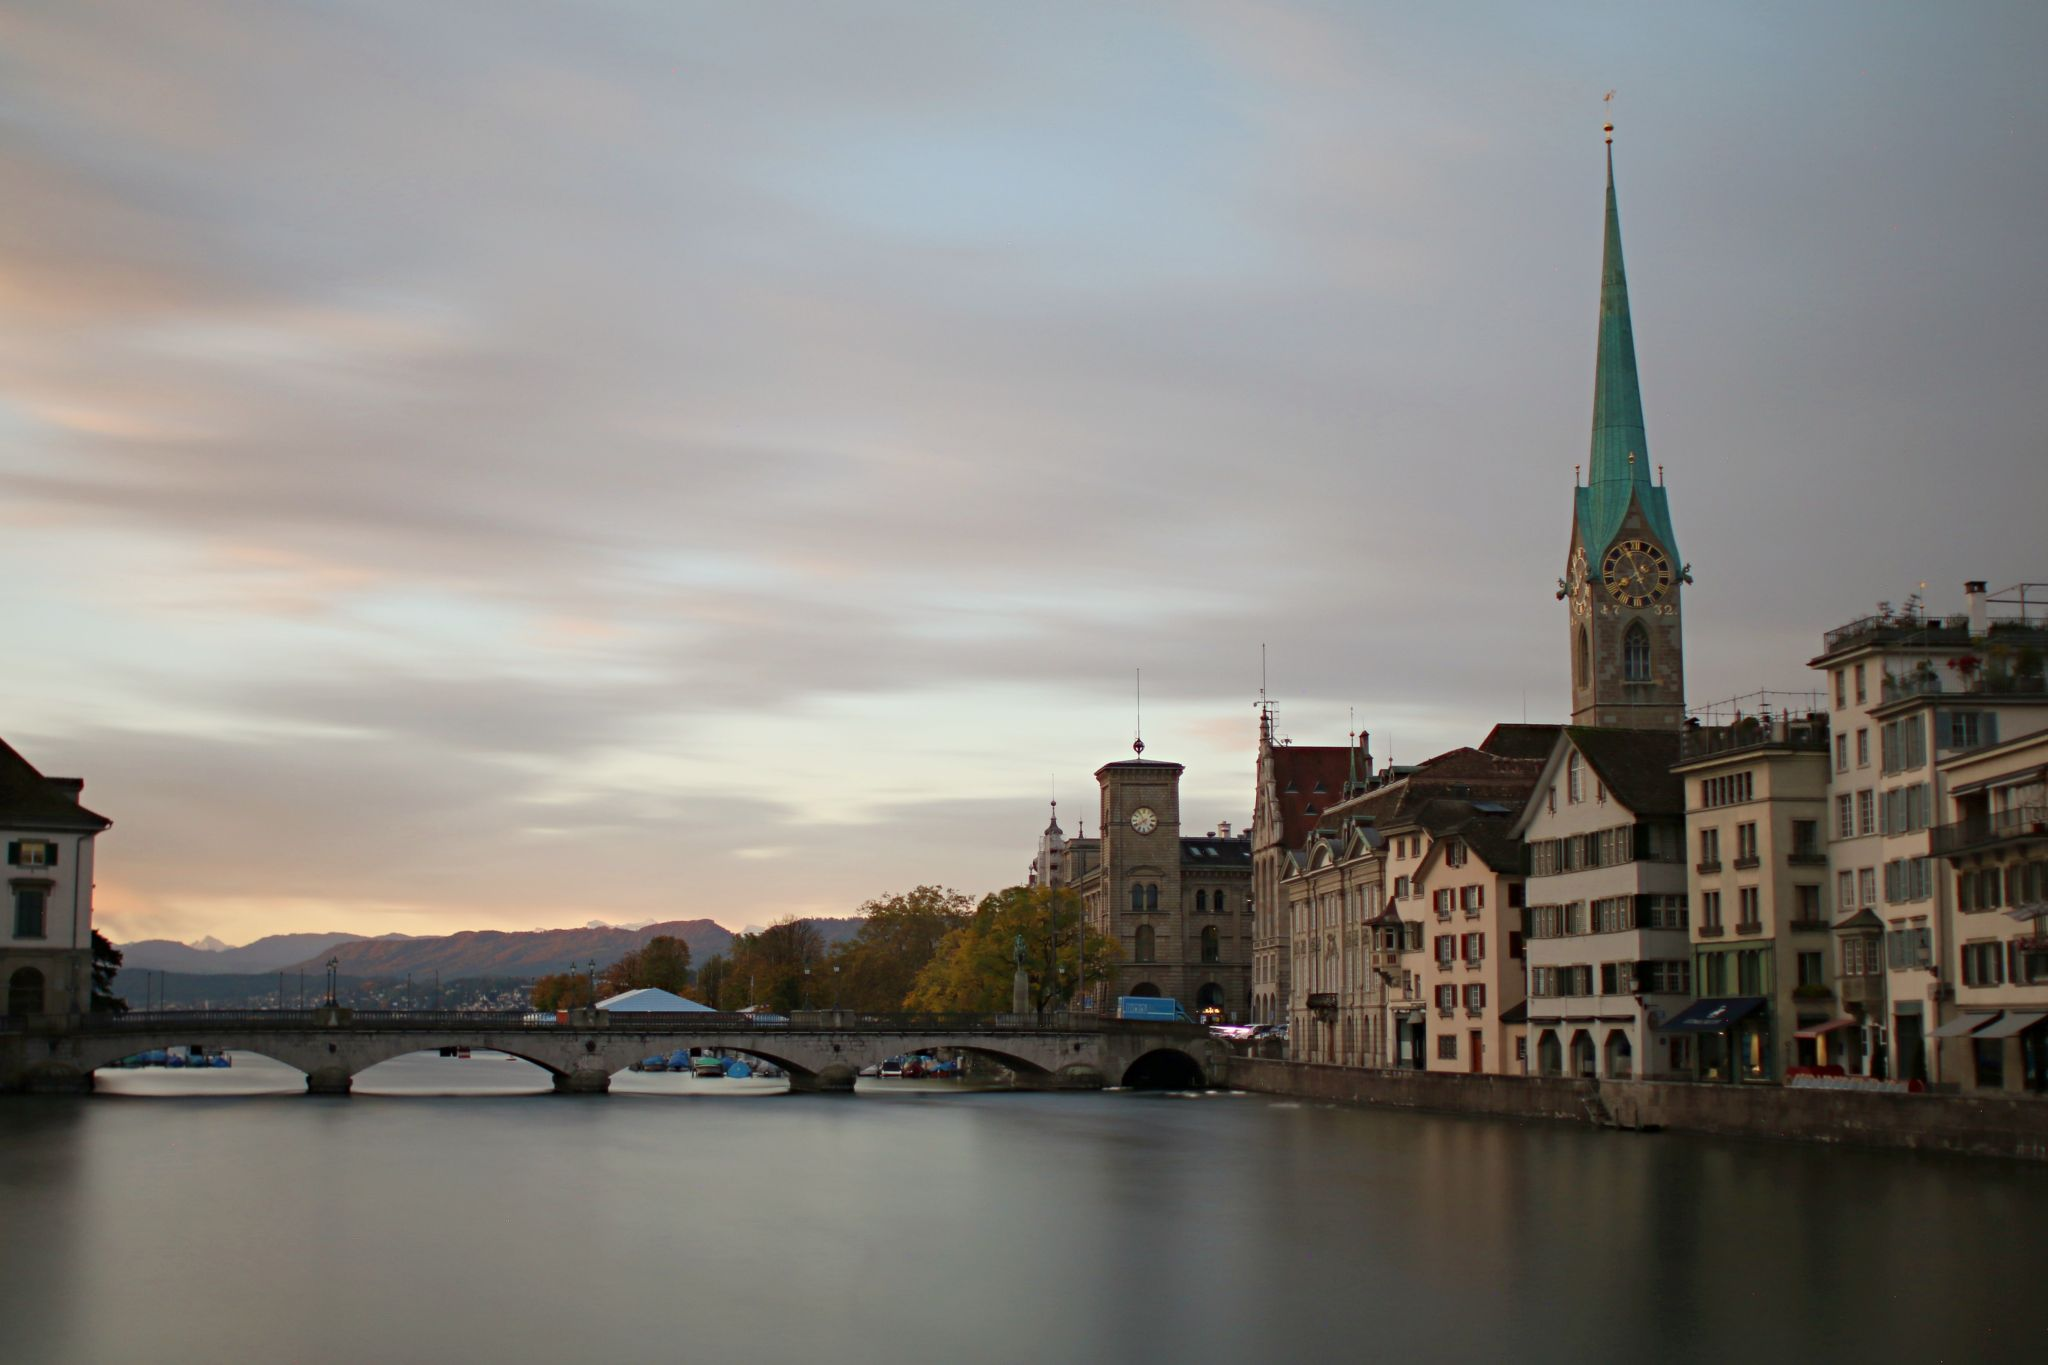 From Rathaus Bridge, Switzerland